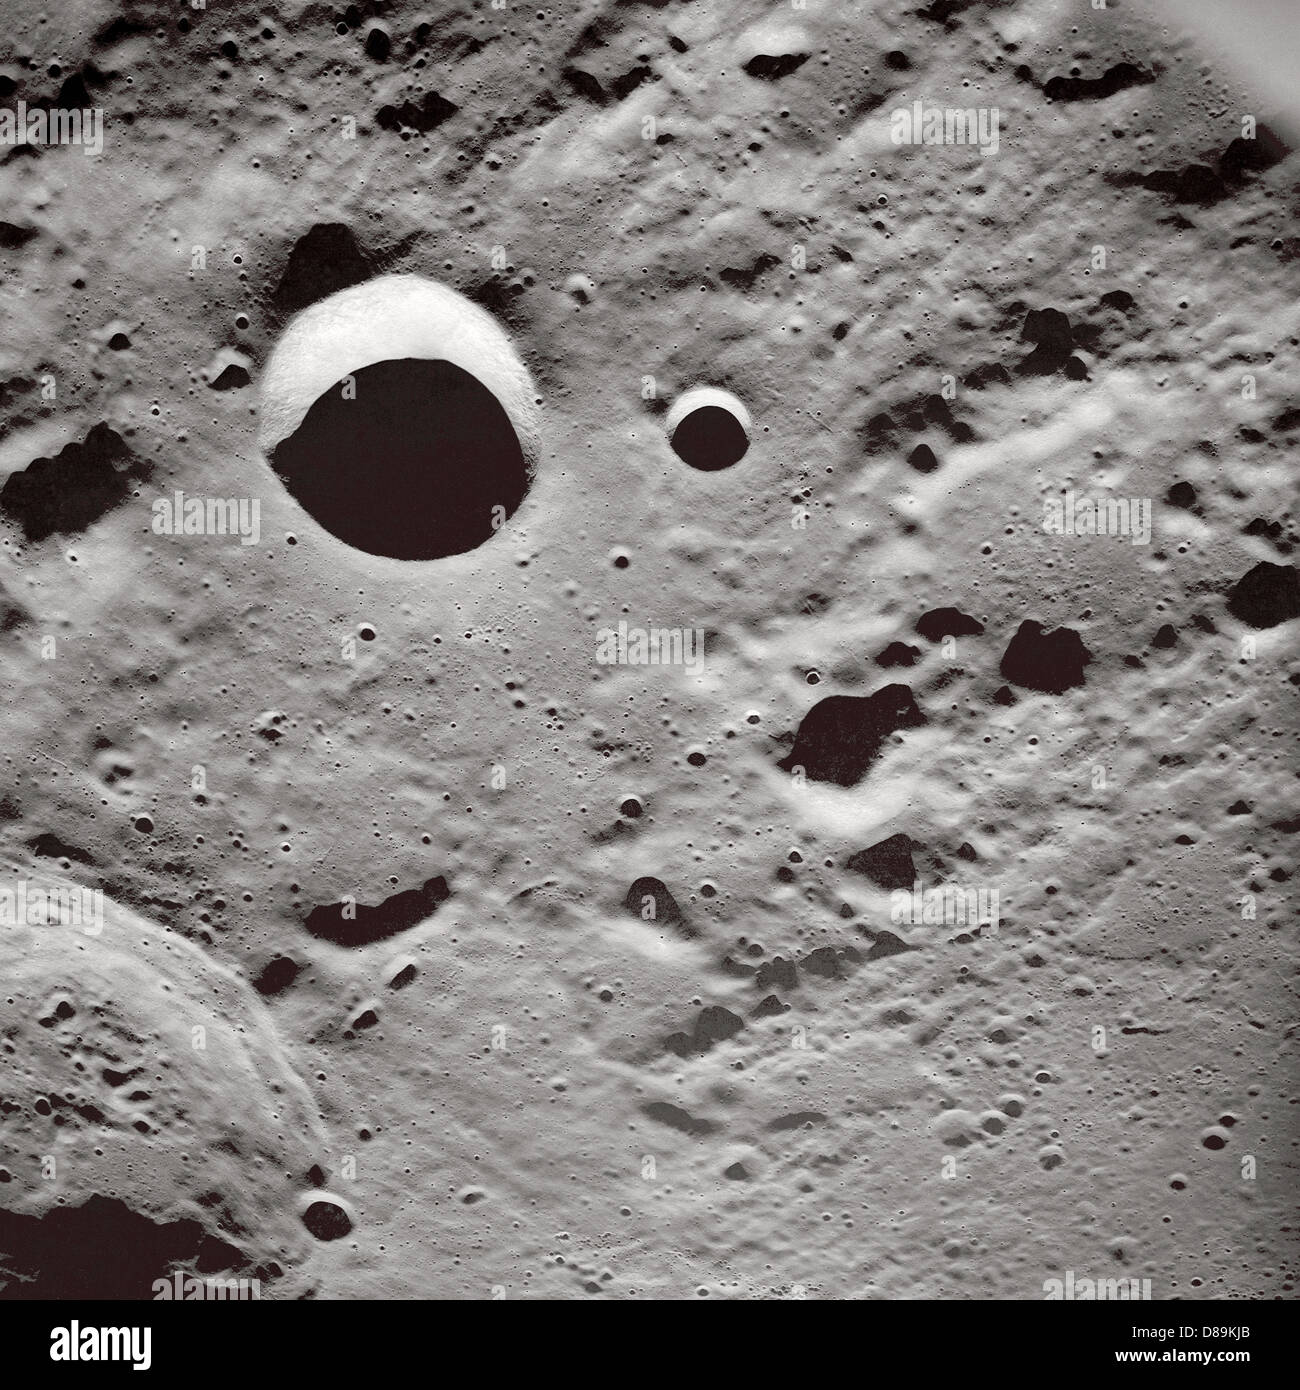 Shadows On Lunar Surface - Stock Image